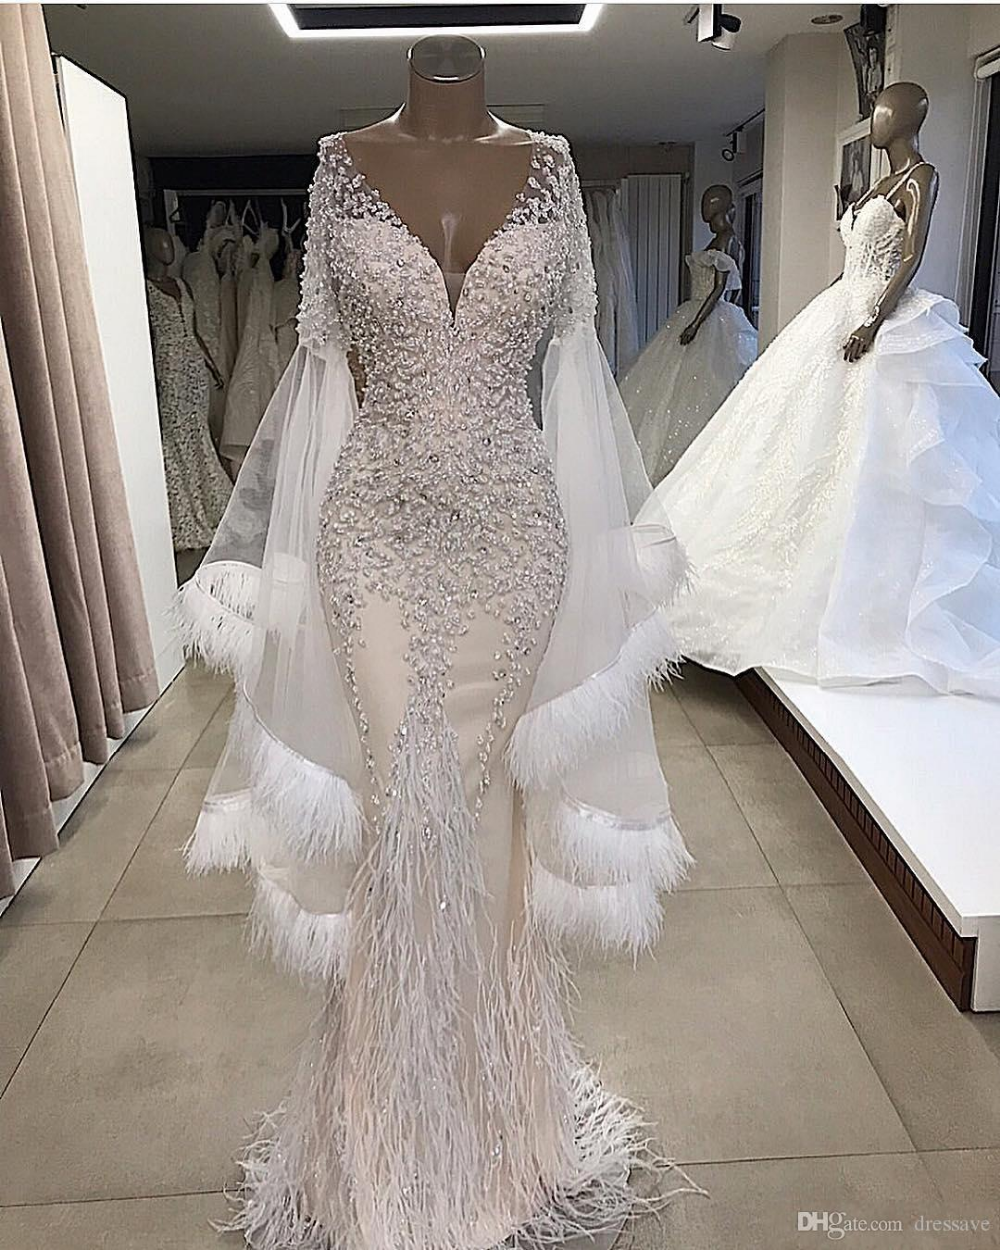 Feather Beaded Mermaid Wedding Dresses Luxury Sparkly Off Shoulder Long Sleeves B Prom Dresses Long With Sleeves Prom Dresses With Sleeves Mermaid Prom Dresses,Woman Wedding Dress Woman Cartoon Dress